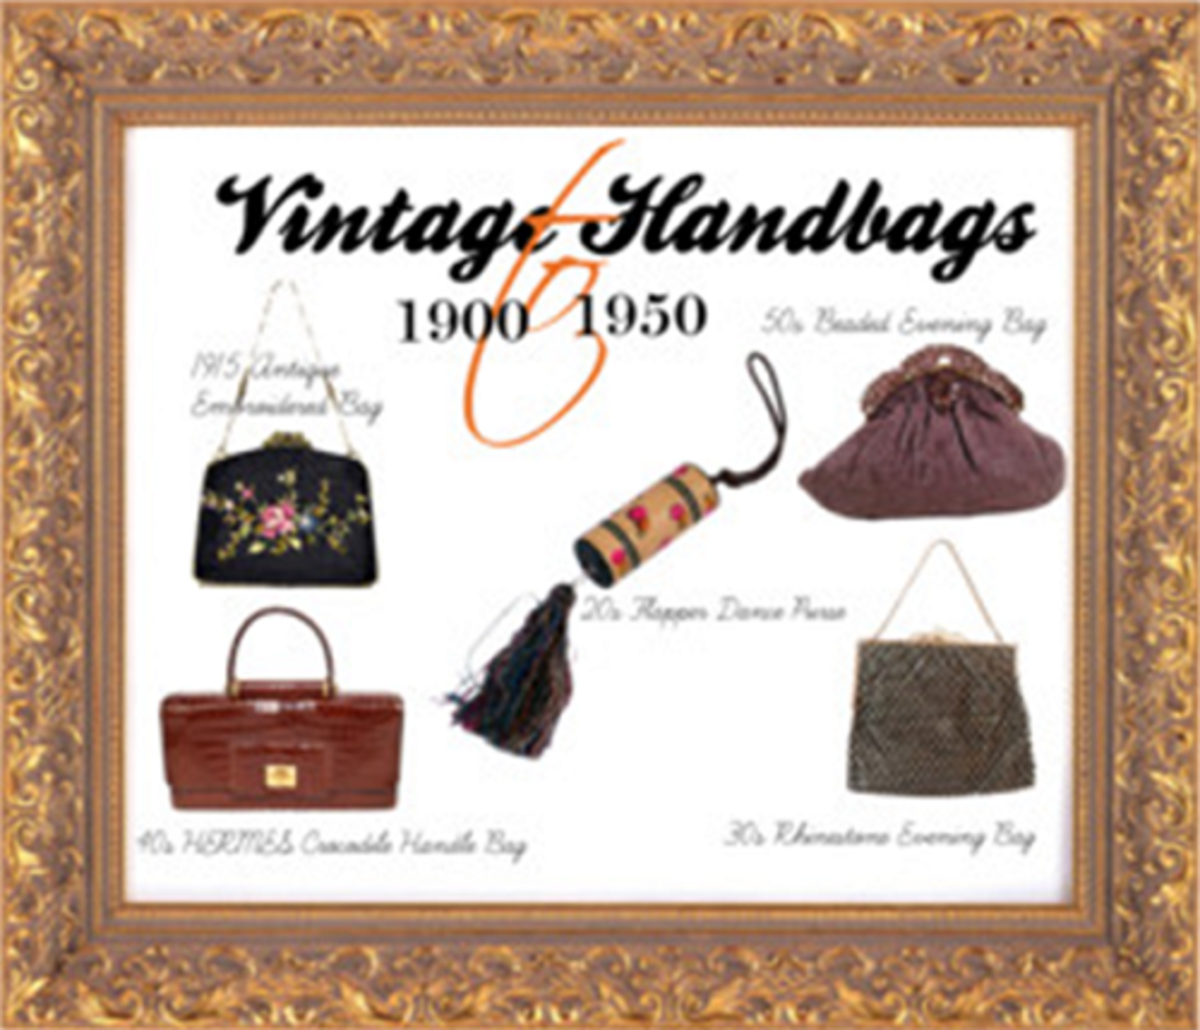 Women Handbags of 1900 to 1960s